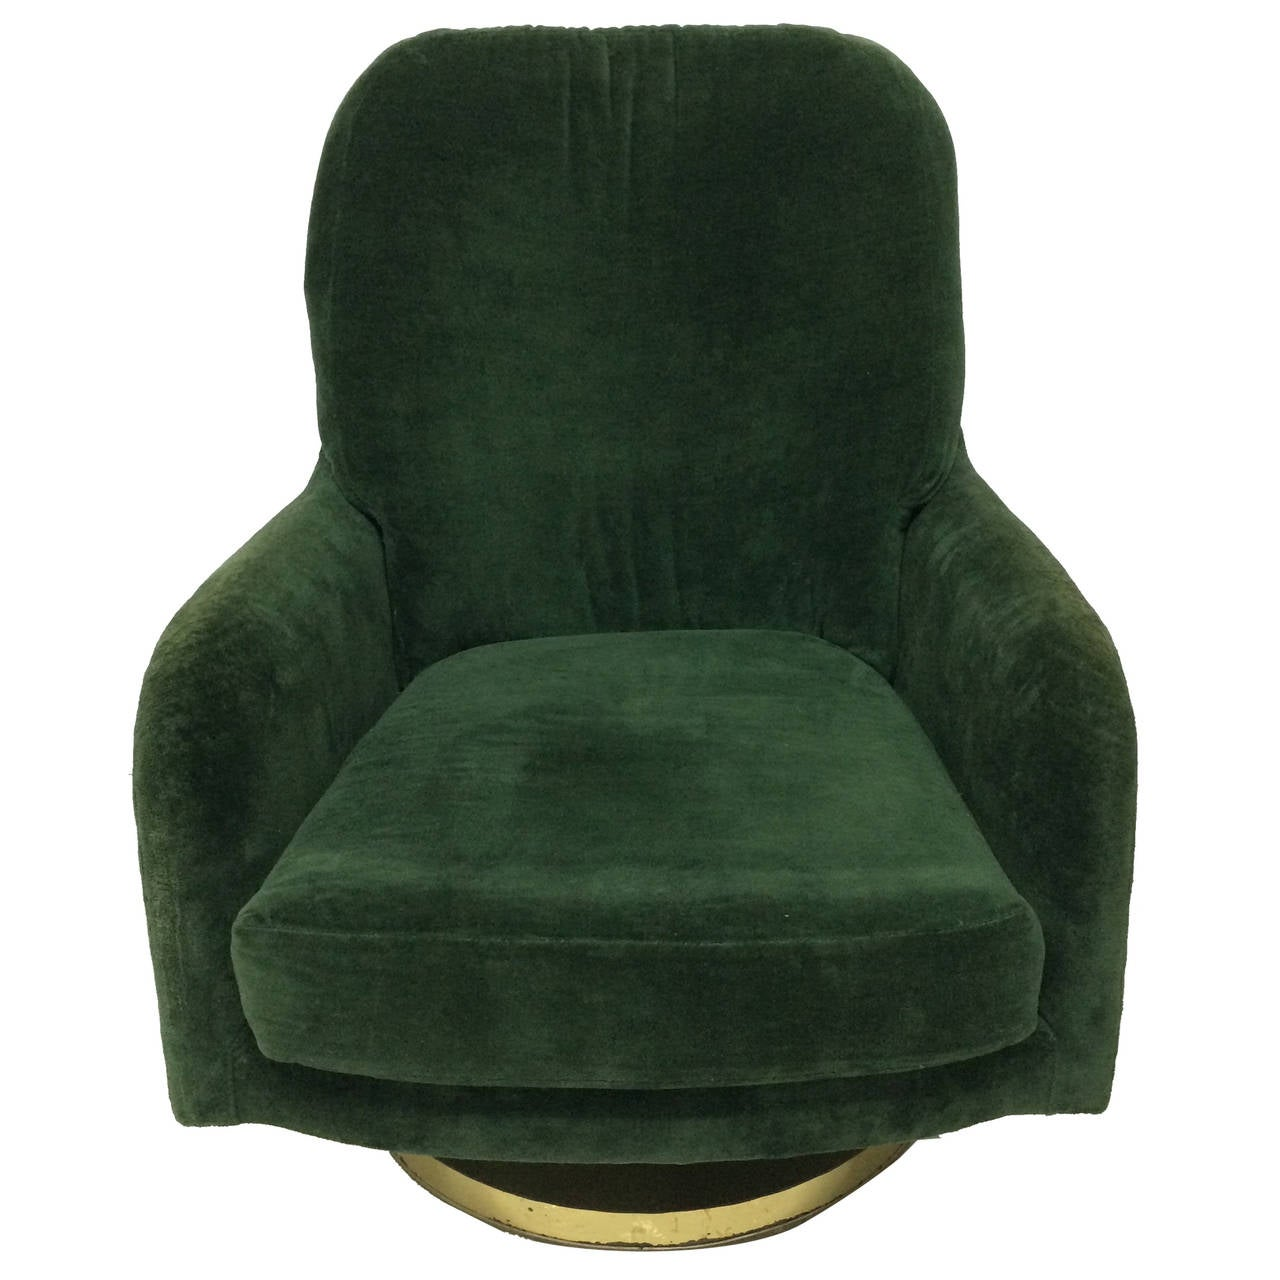 green velvet swivel chair cover hire edinburgh prices original milo baughman lounge for thayer